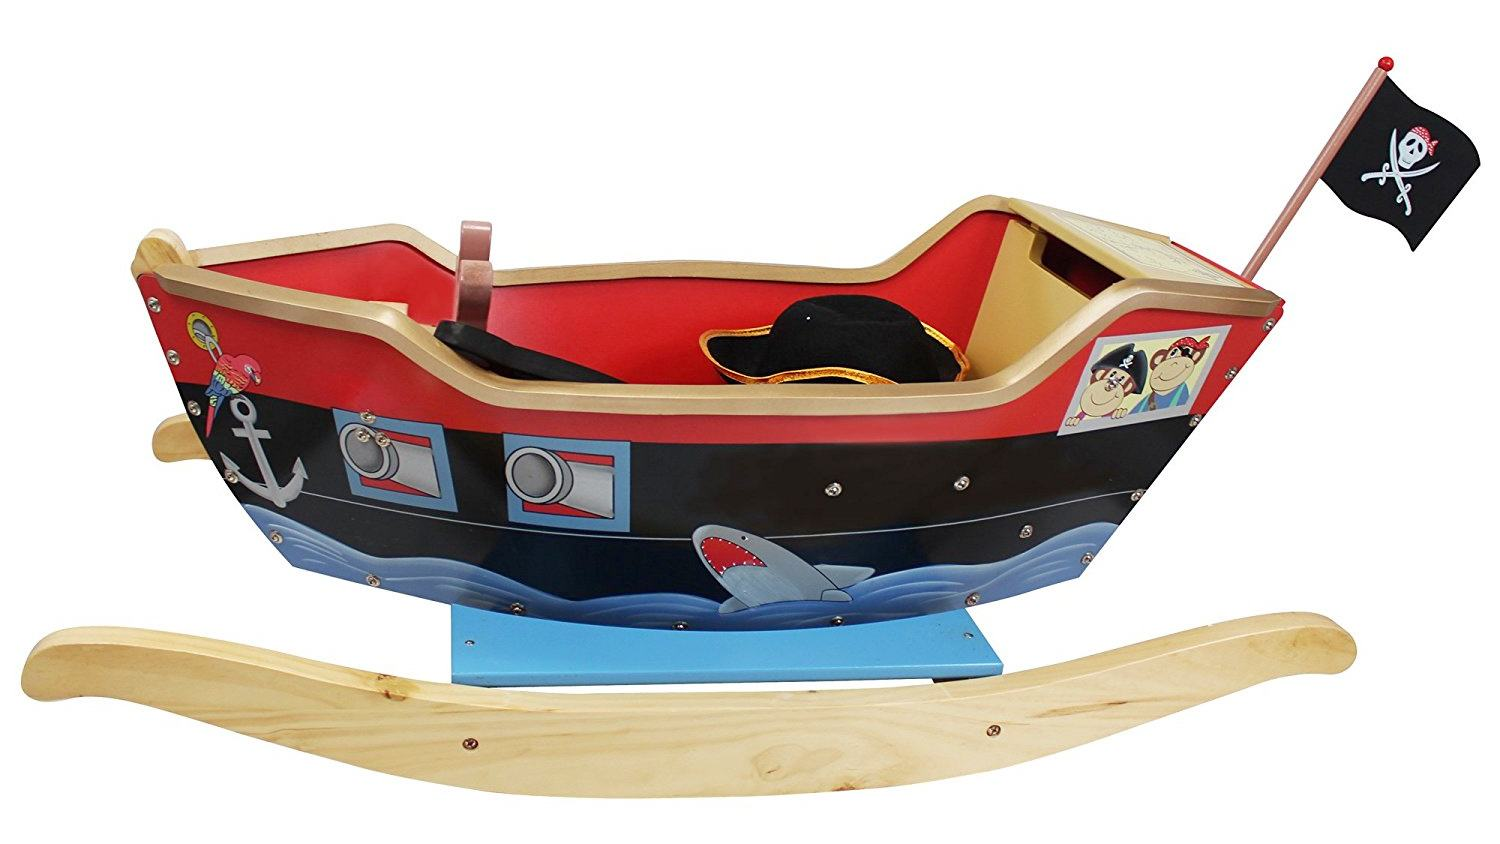 navio-pirata-de-balanco-pirate-ship-kids-ride-on-toy-06